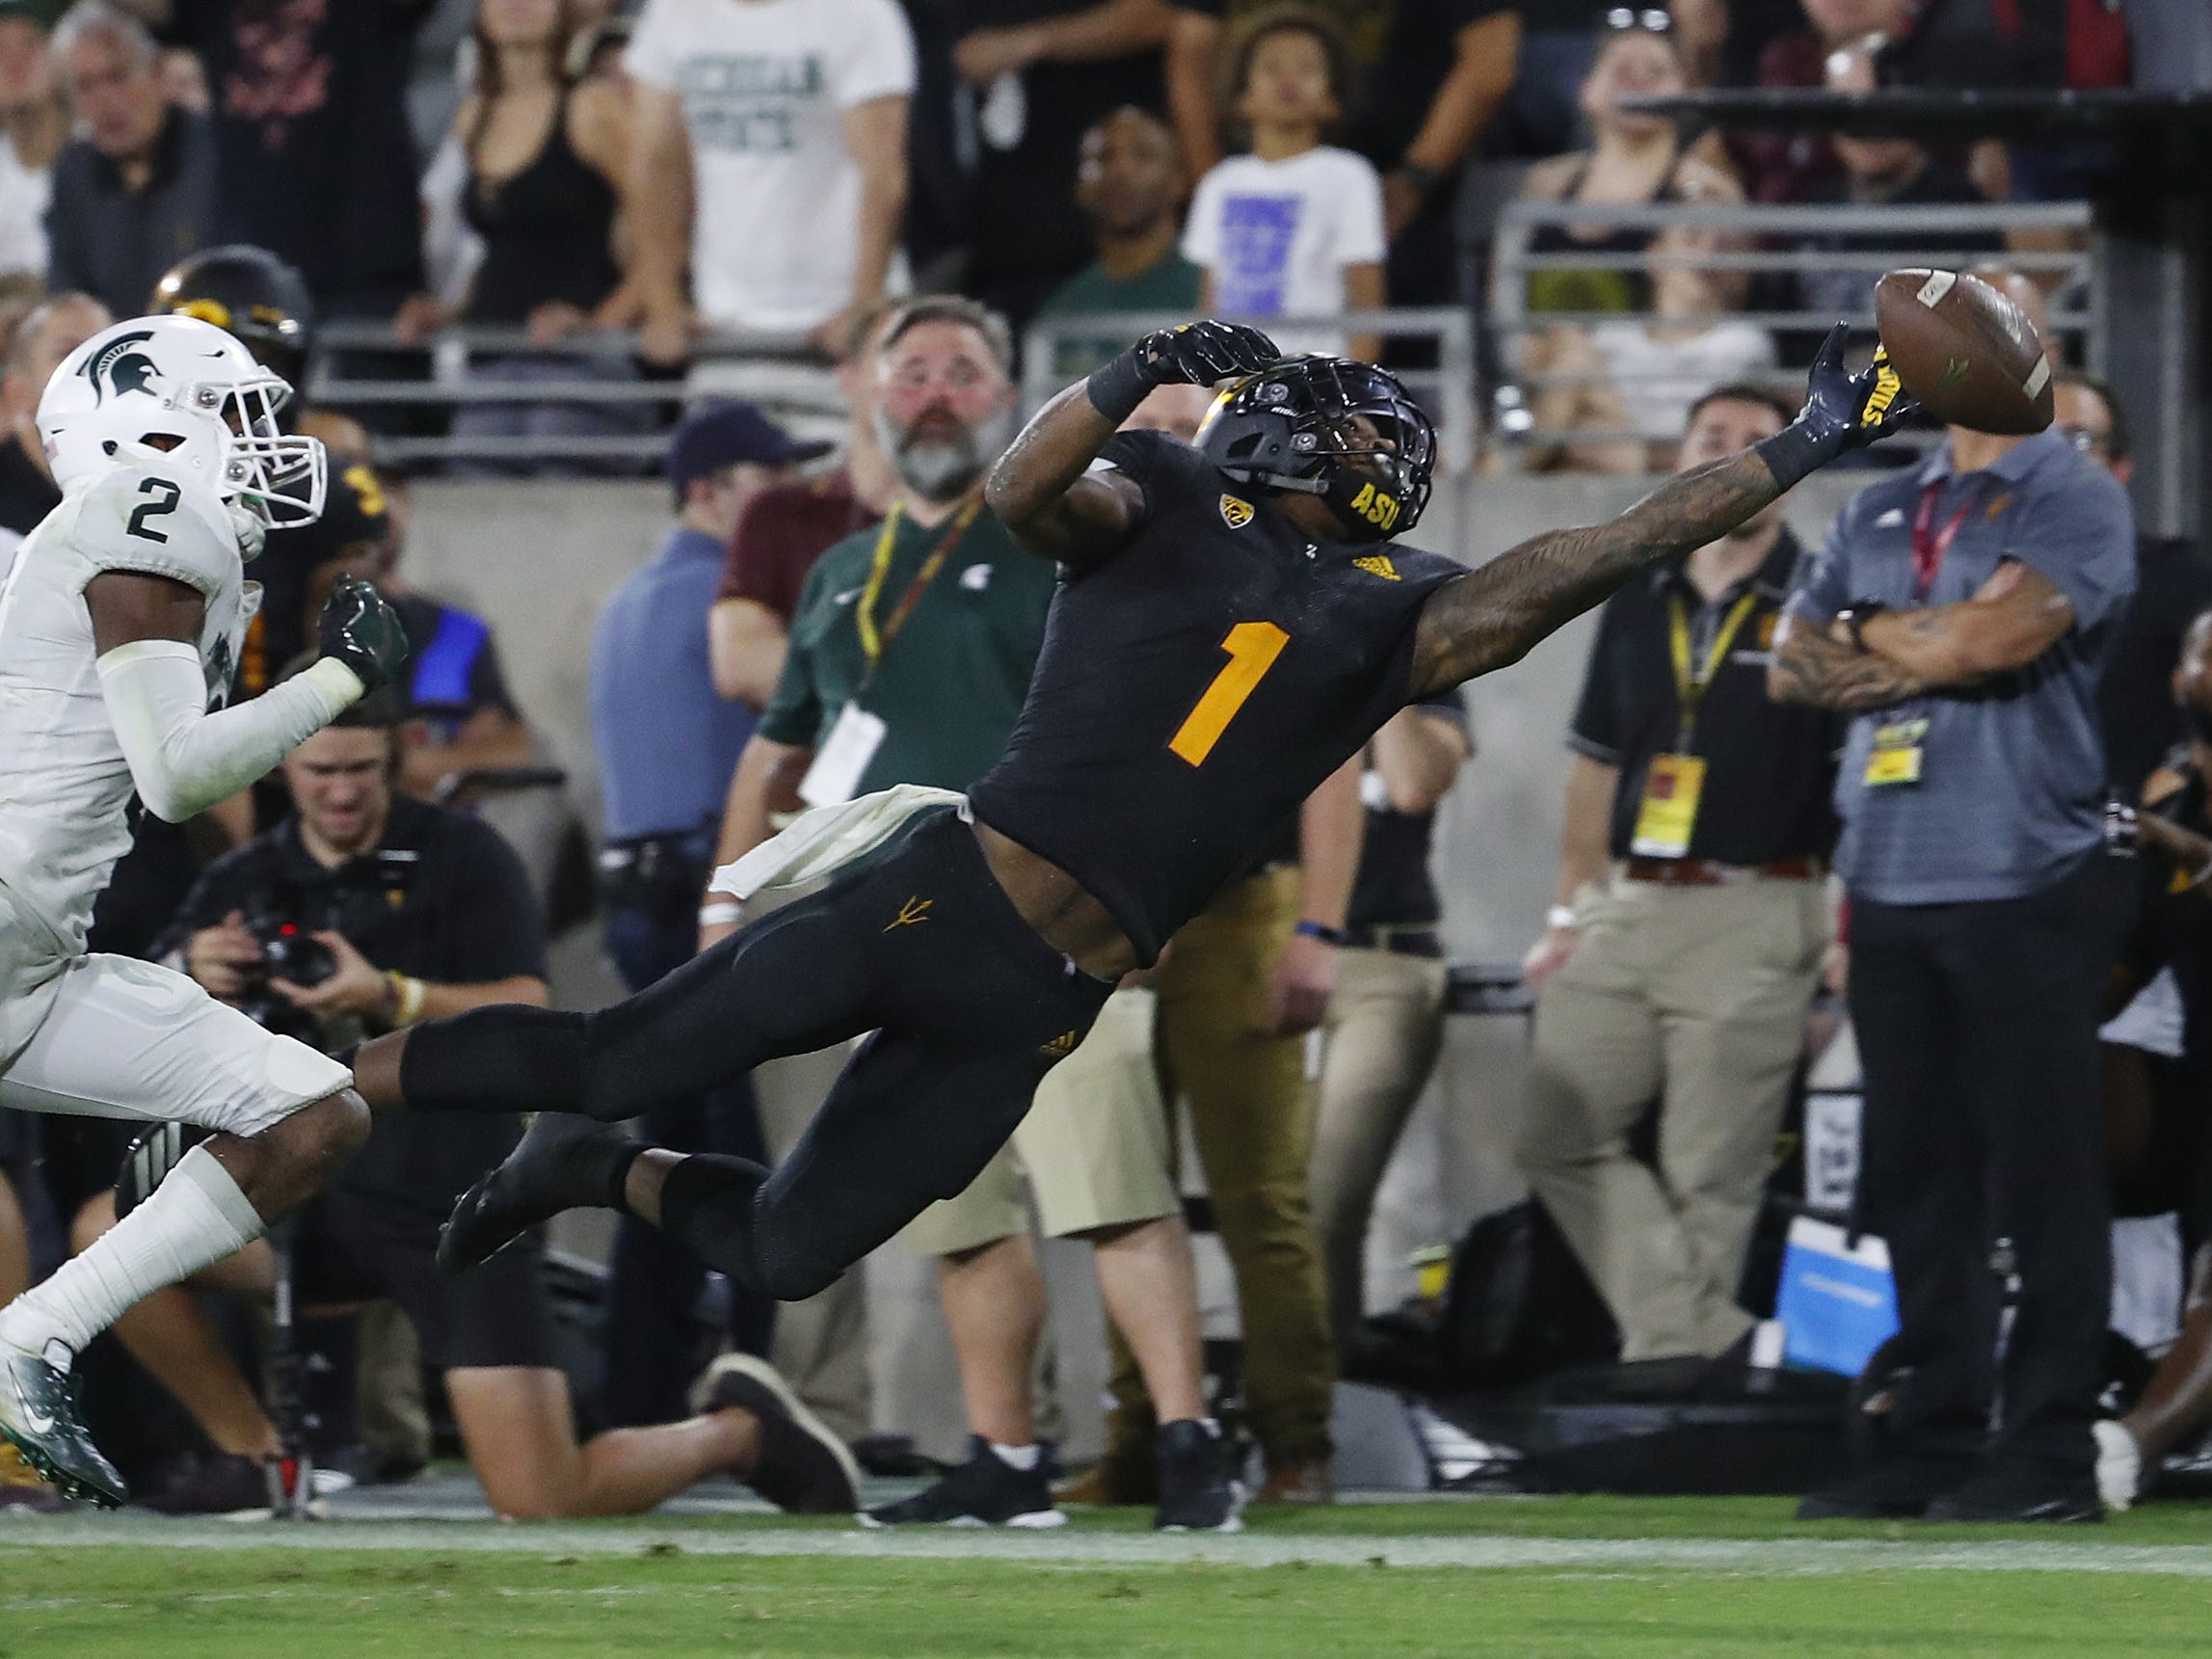 Arizona State Sun Devils wide receiver N'Keal Harry (1) dives but is unable to bring in a ball against Michigan State's Justin Layne (2) during the second quarter at Sun Devil Stadium in Tempe, Ariz. on Sept. 8, 2018.